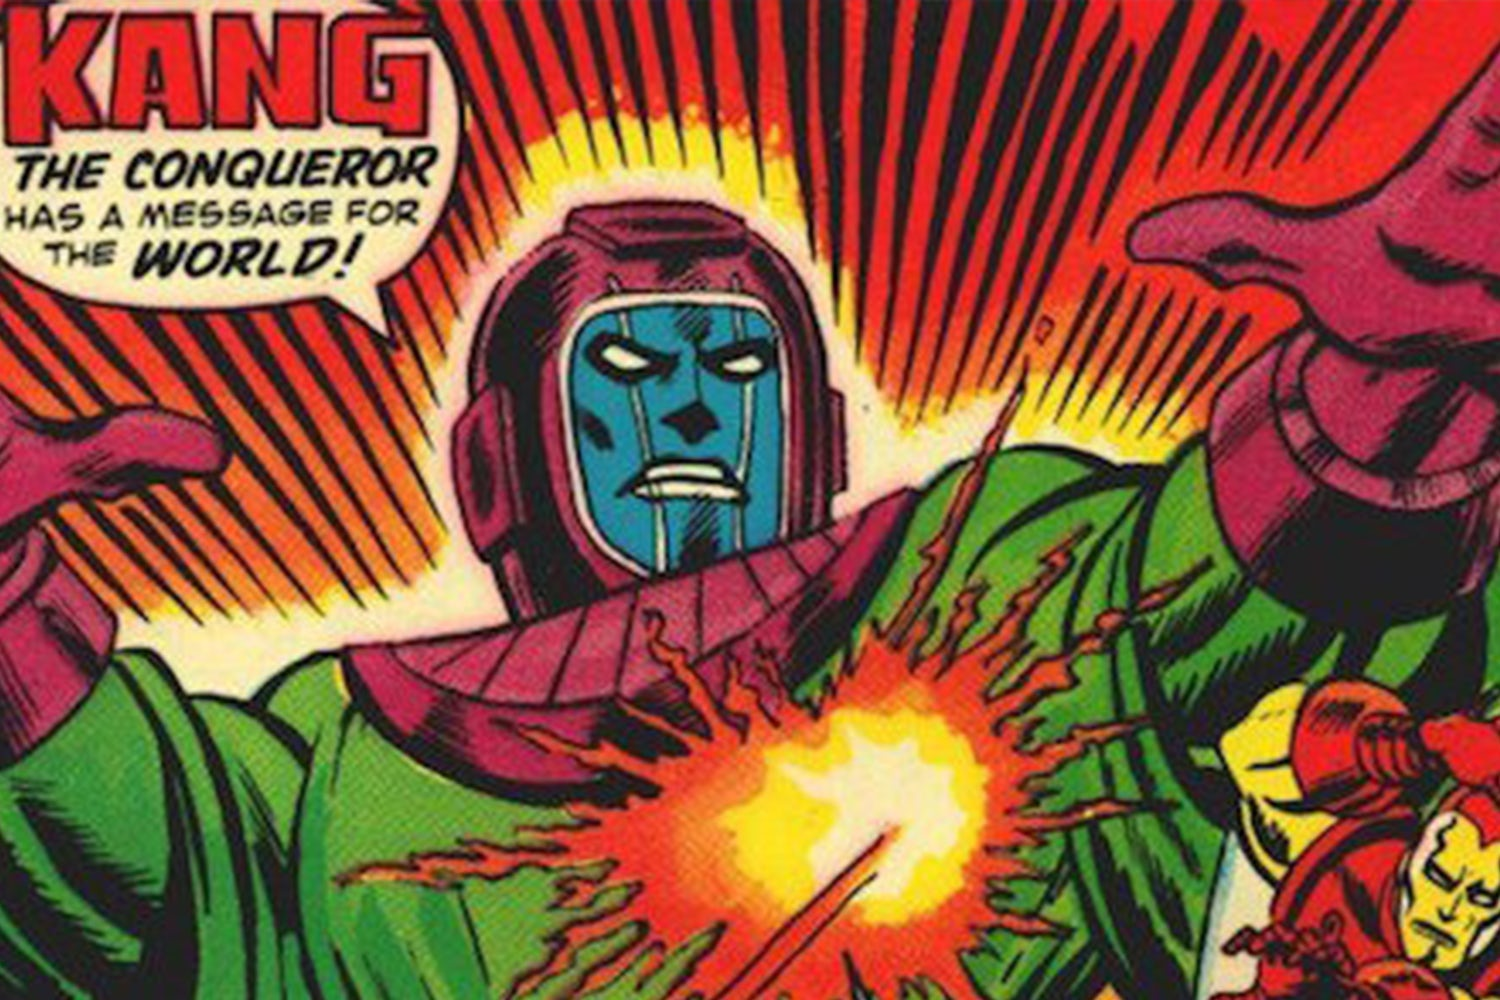 kang the conqueror in article